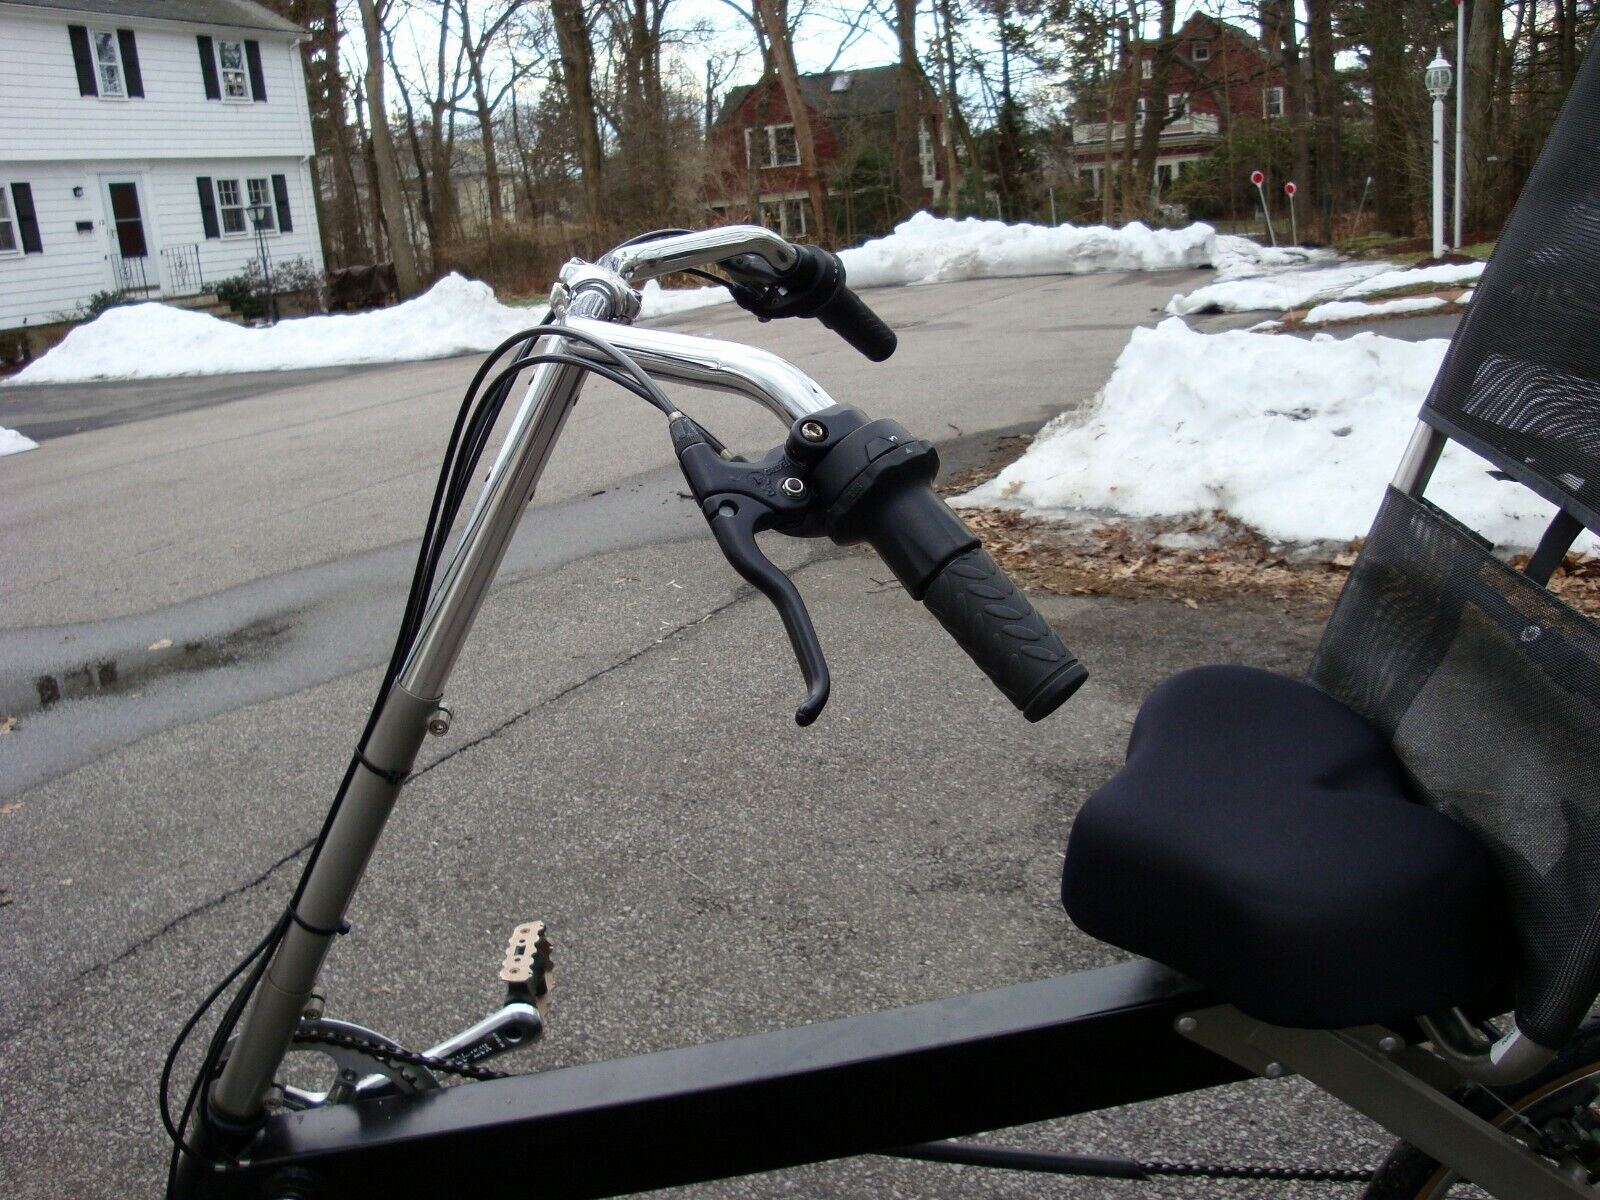 Bike-E Recumbent Cruising/Touring bars Extremely helpful for